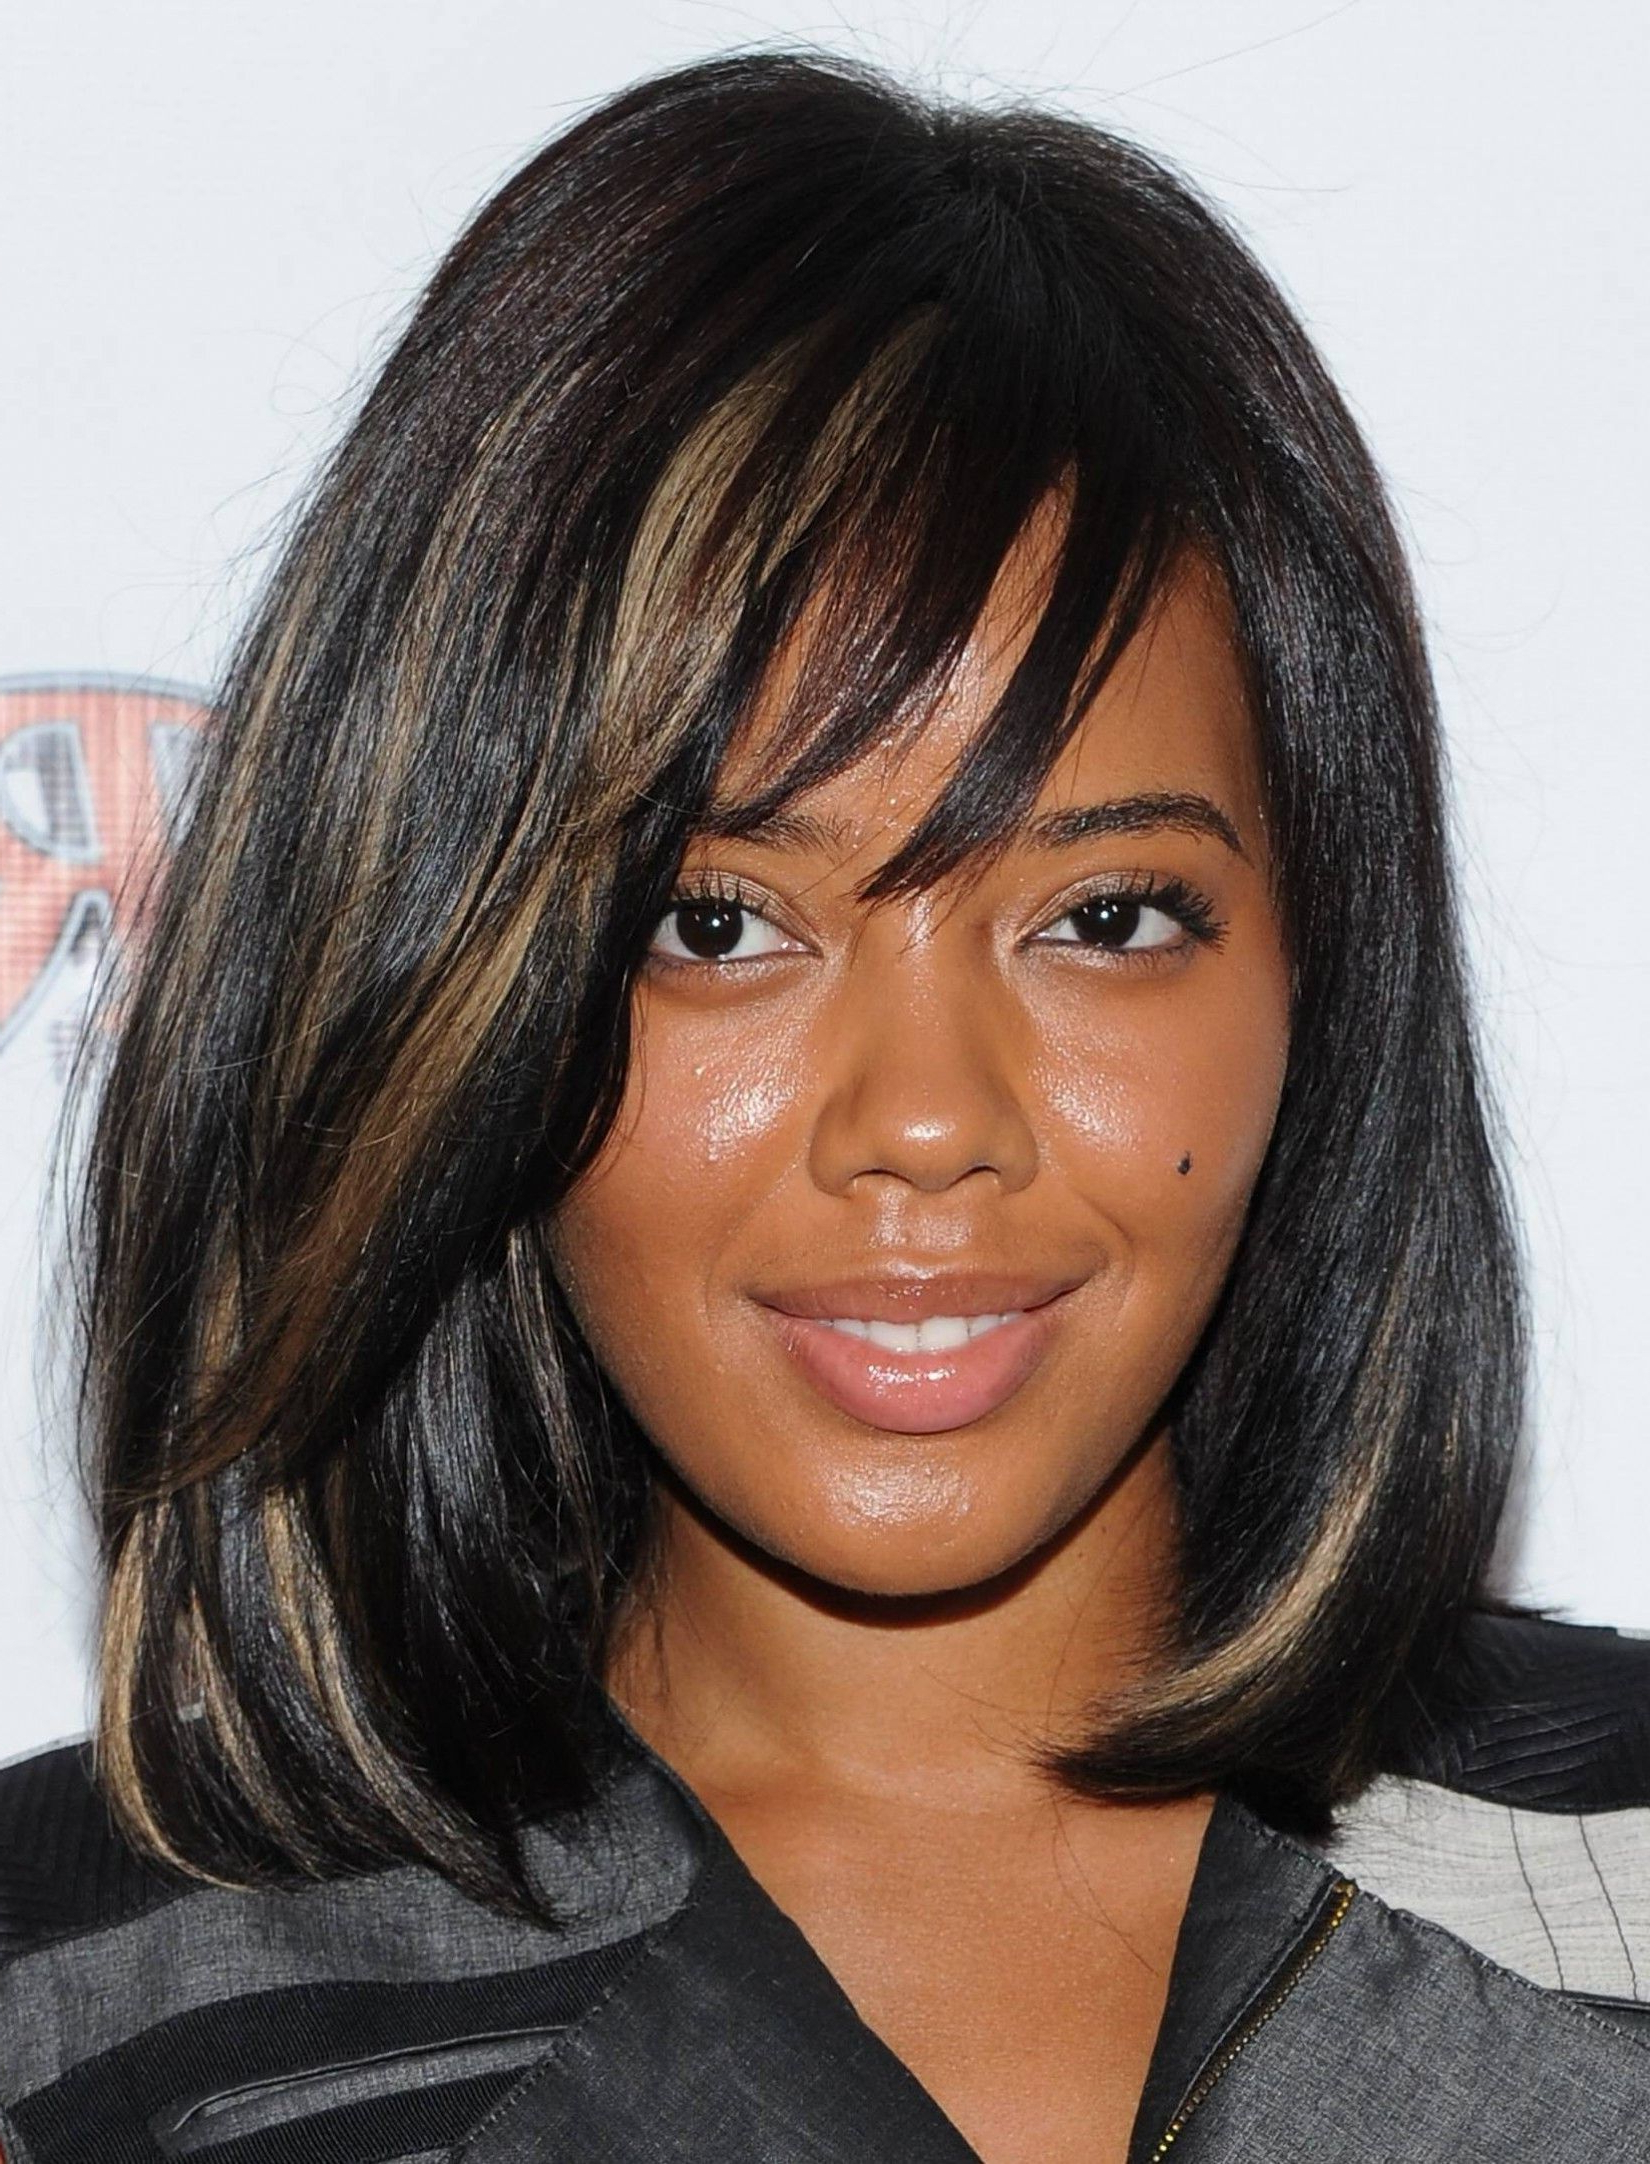 Black Medium Haircuts For Women Lenght Hair (View 8 of 20)